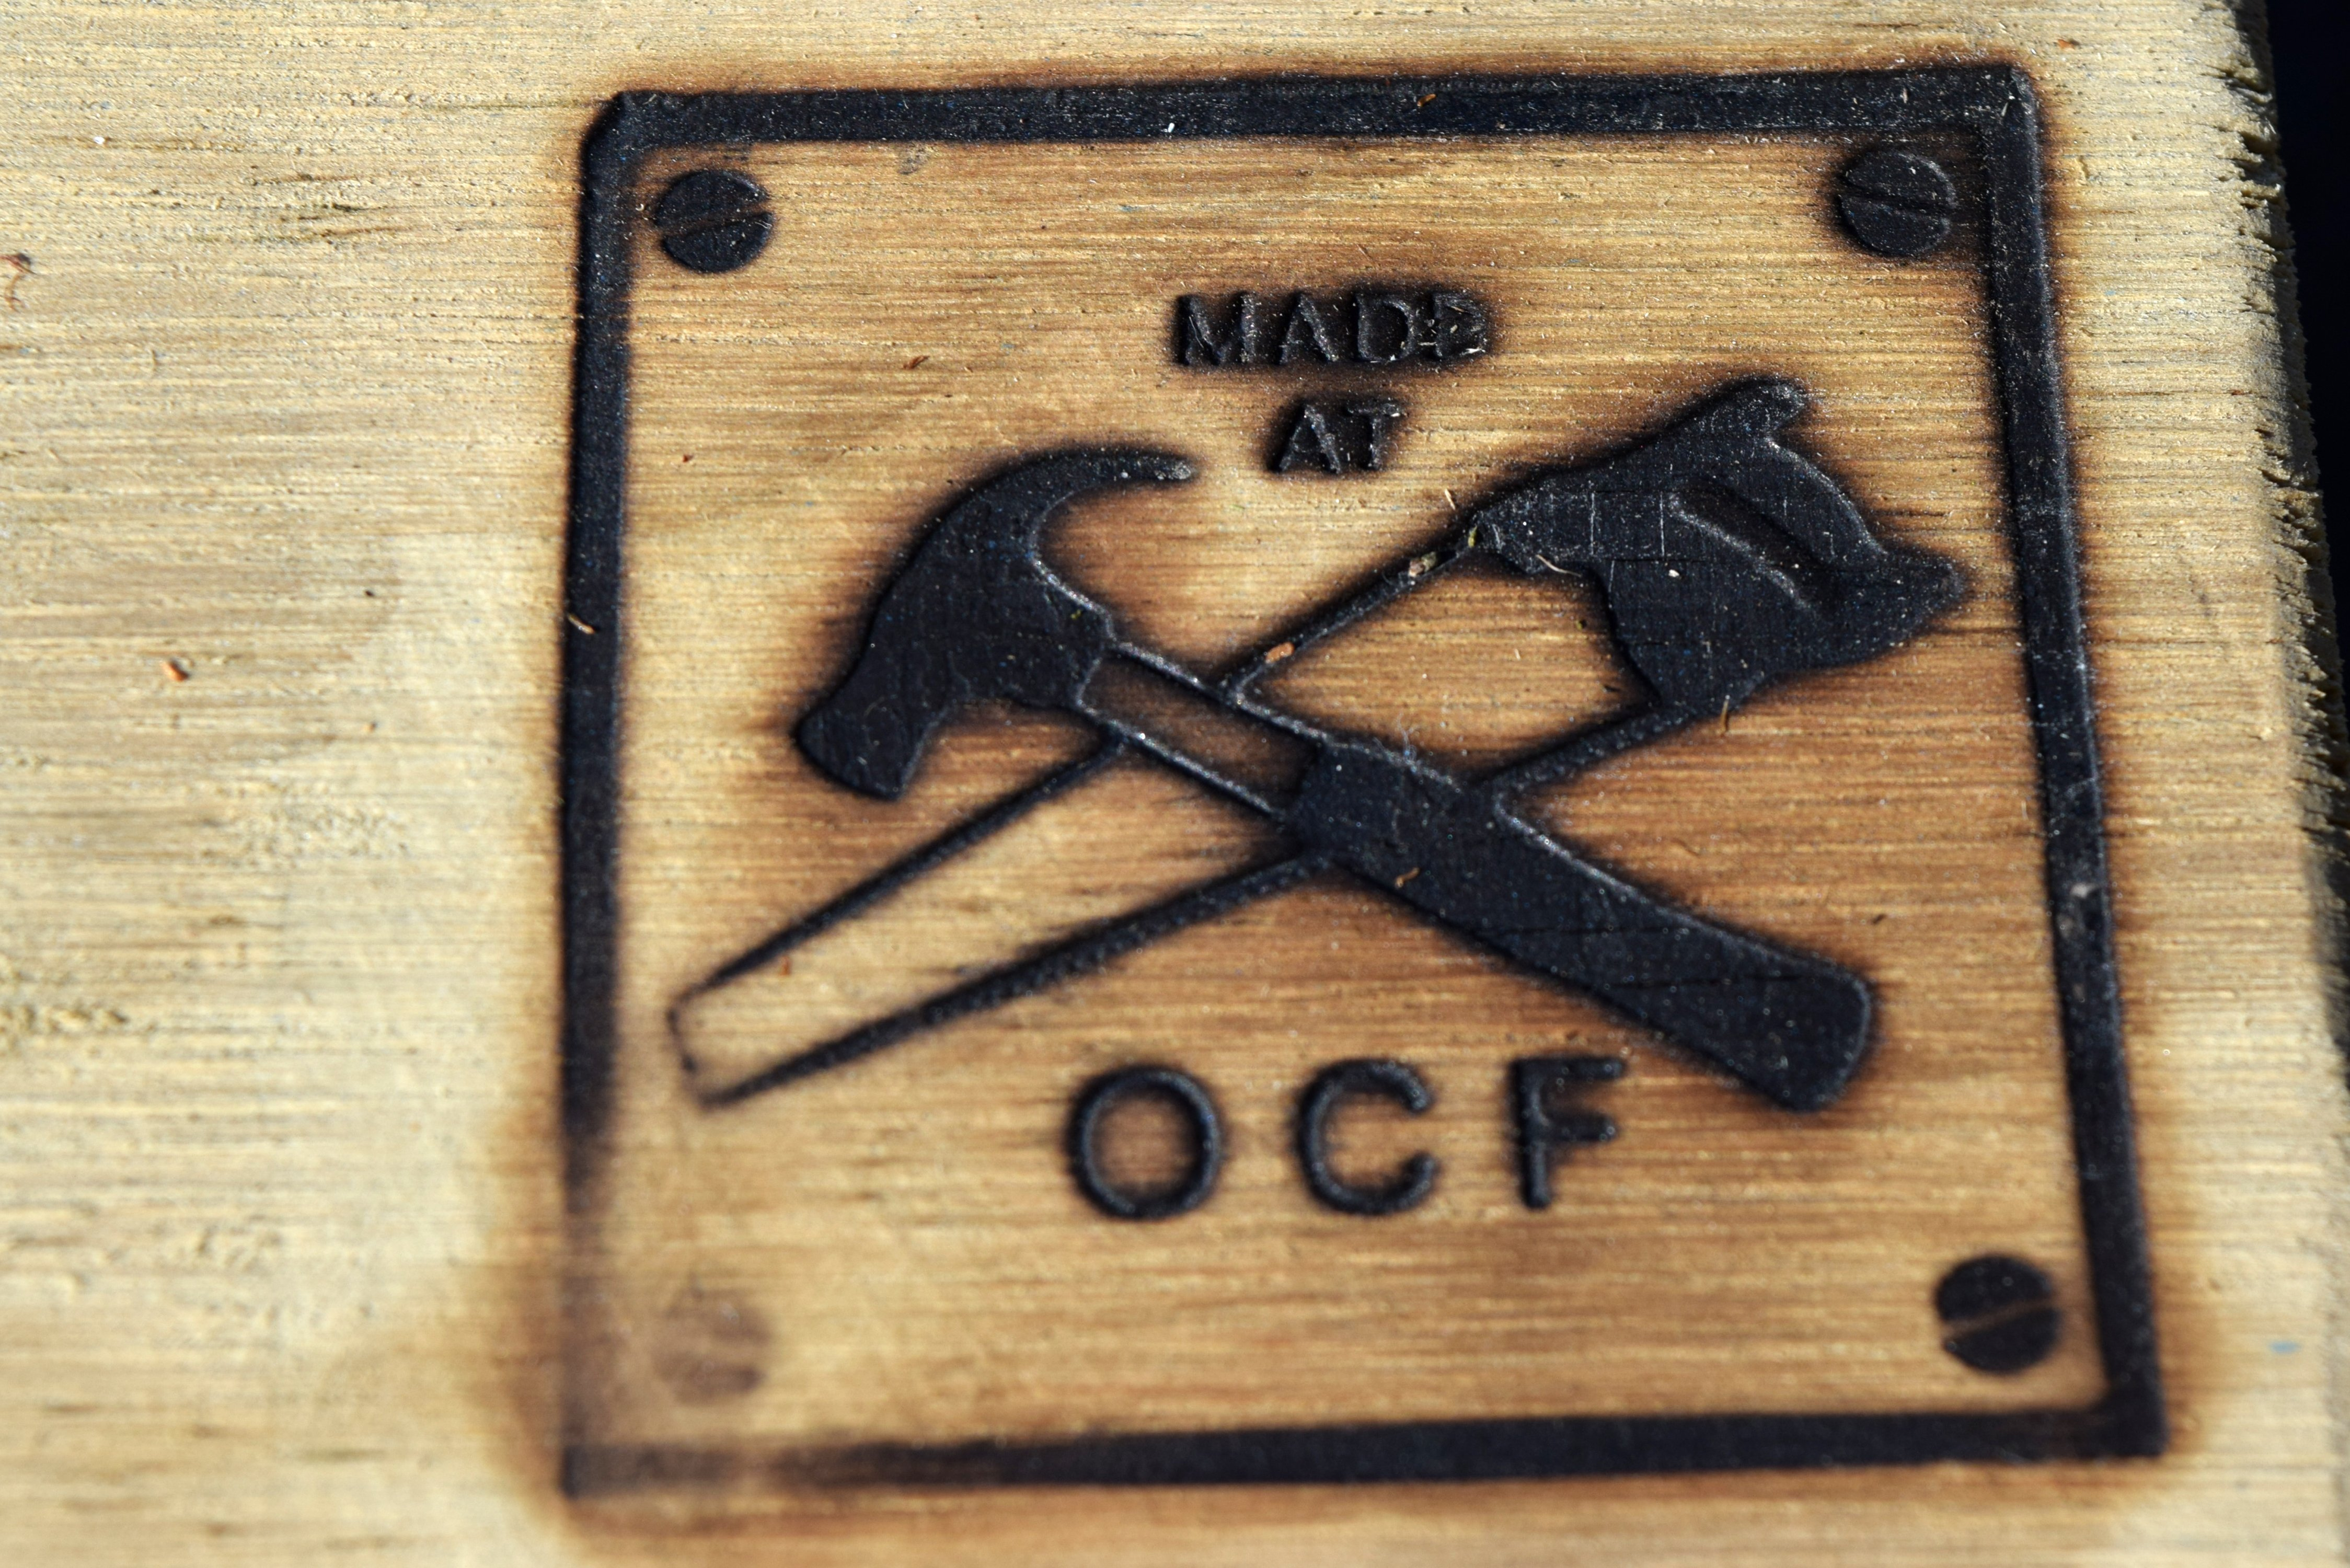 A brand on a stoat trap made by Otago Correctional Facility prisoners.